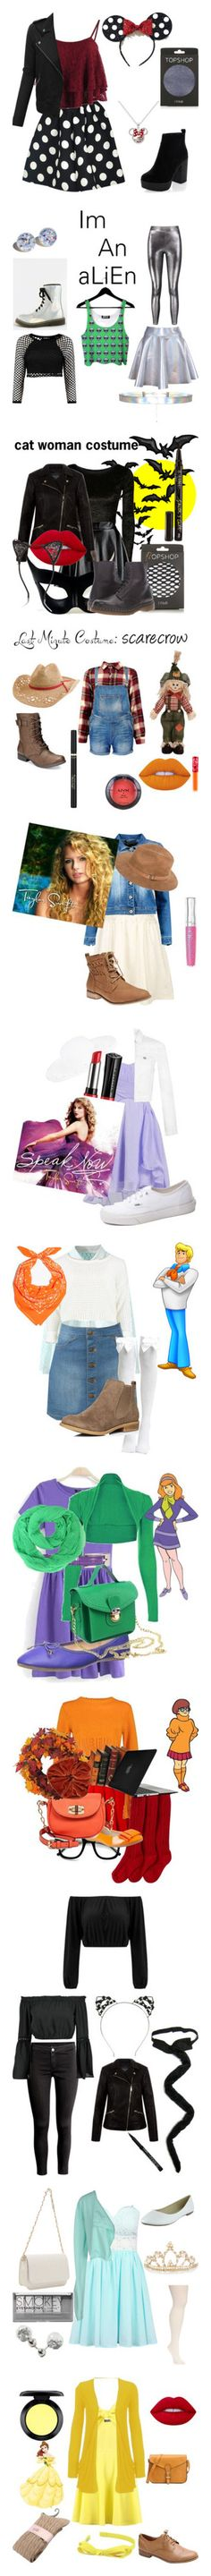 """halloween costumes"" by dinosawus21 ❤ liked on Polyvore"